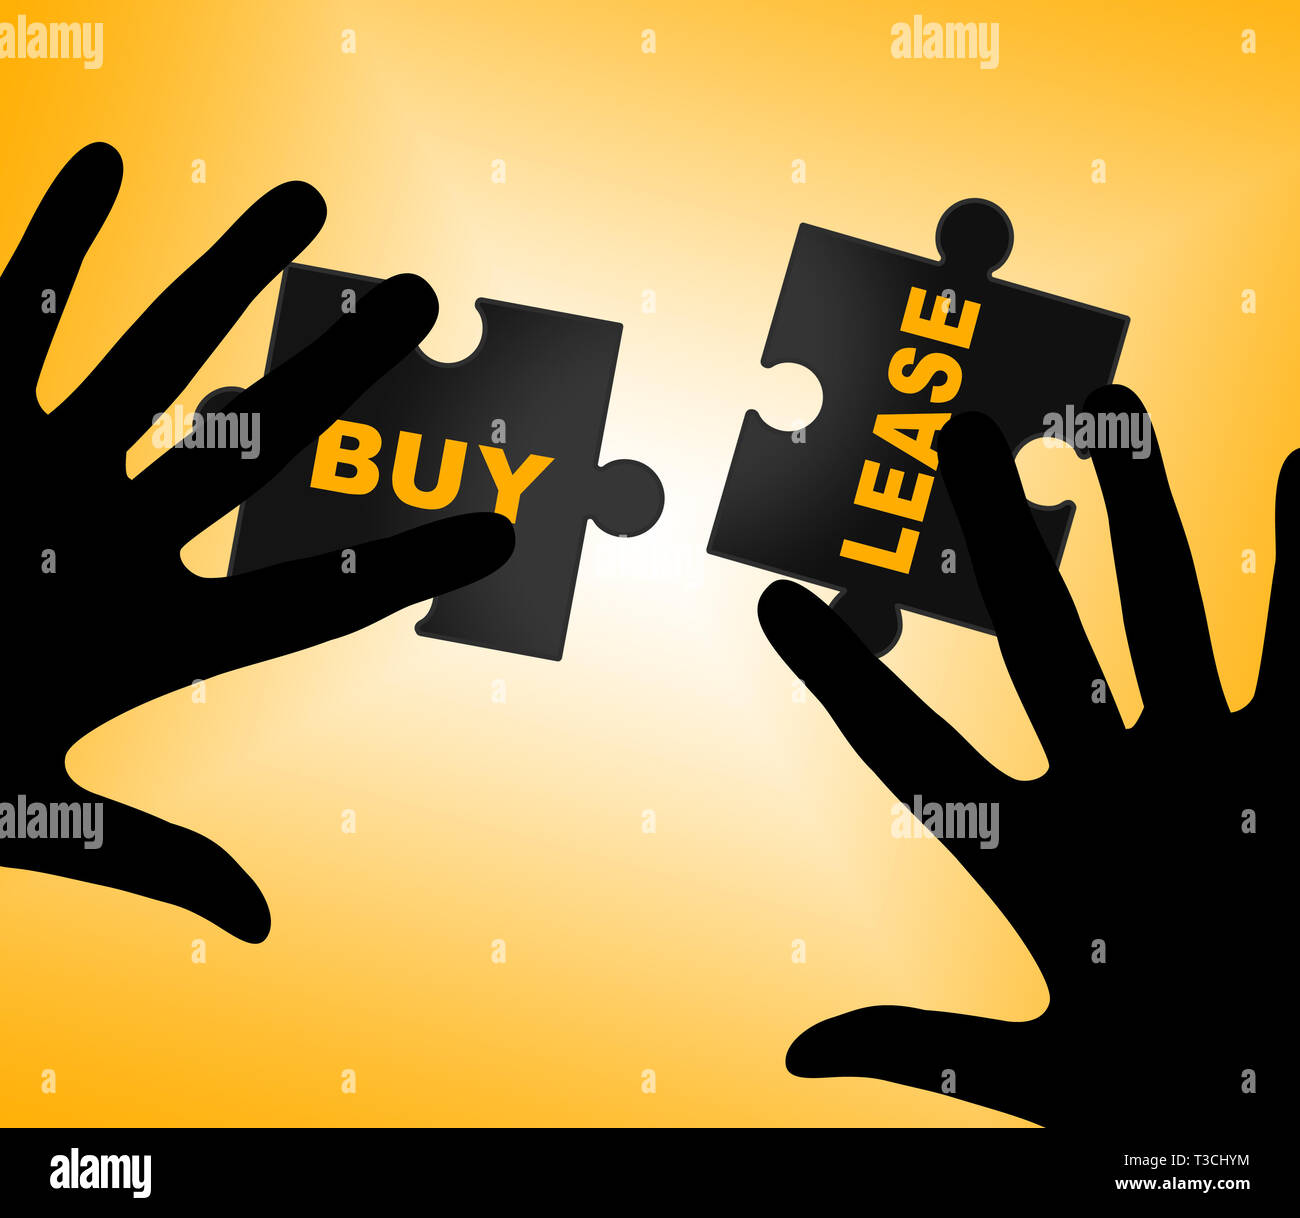 Lease Vs Rent >> Buy Vs Rent Vs Sell Stock Photos Buy Vs Rent Vs Sell Stock